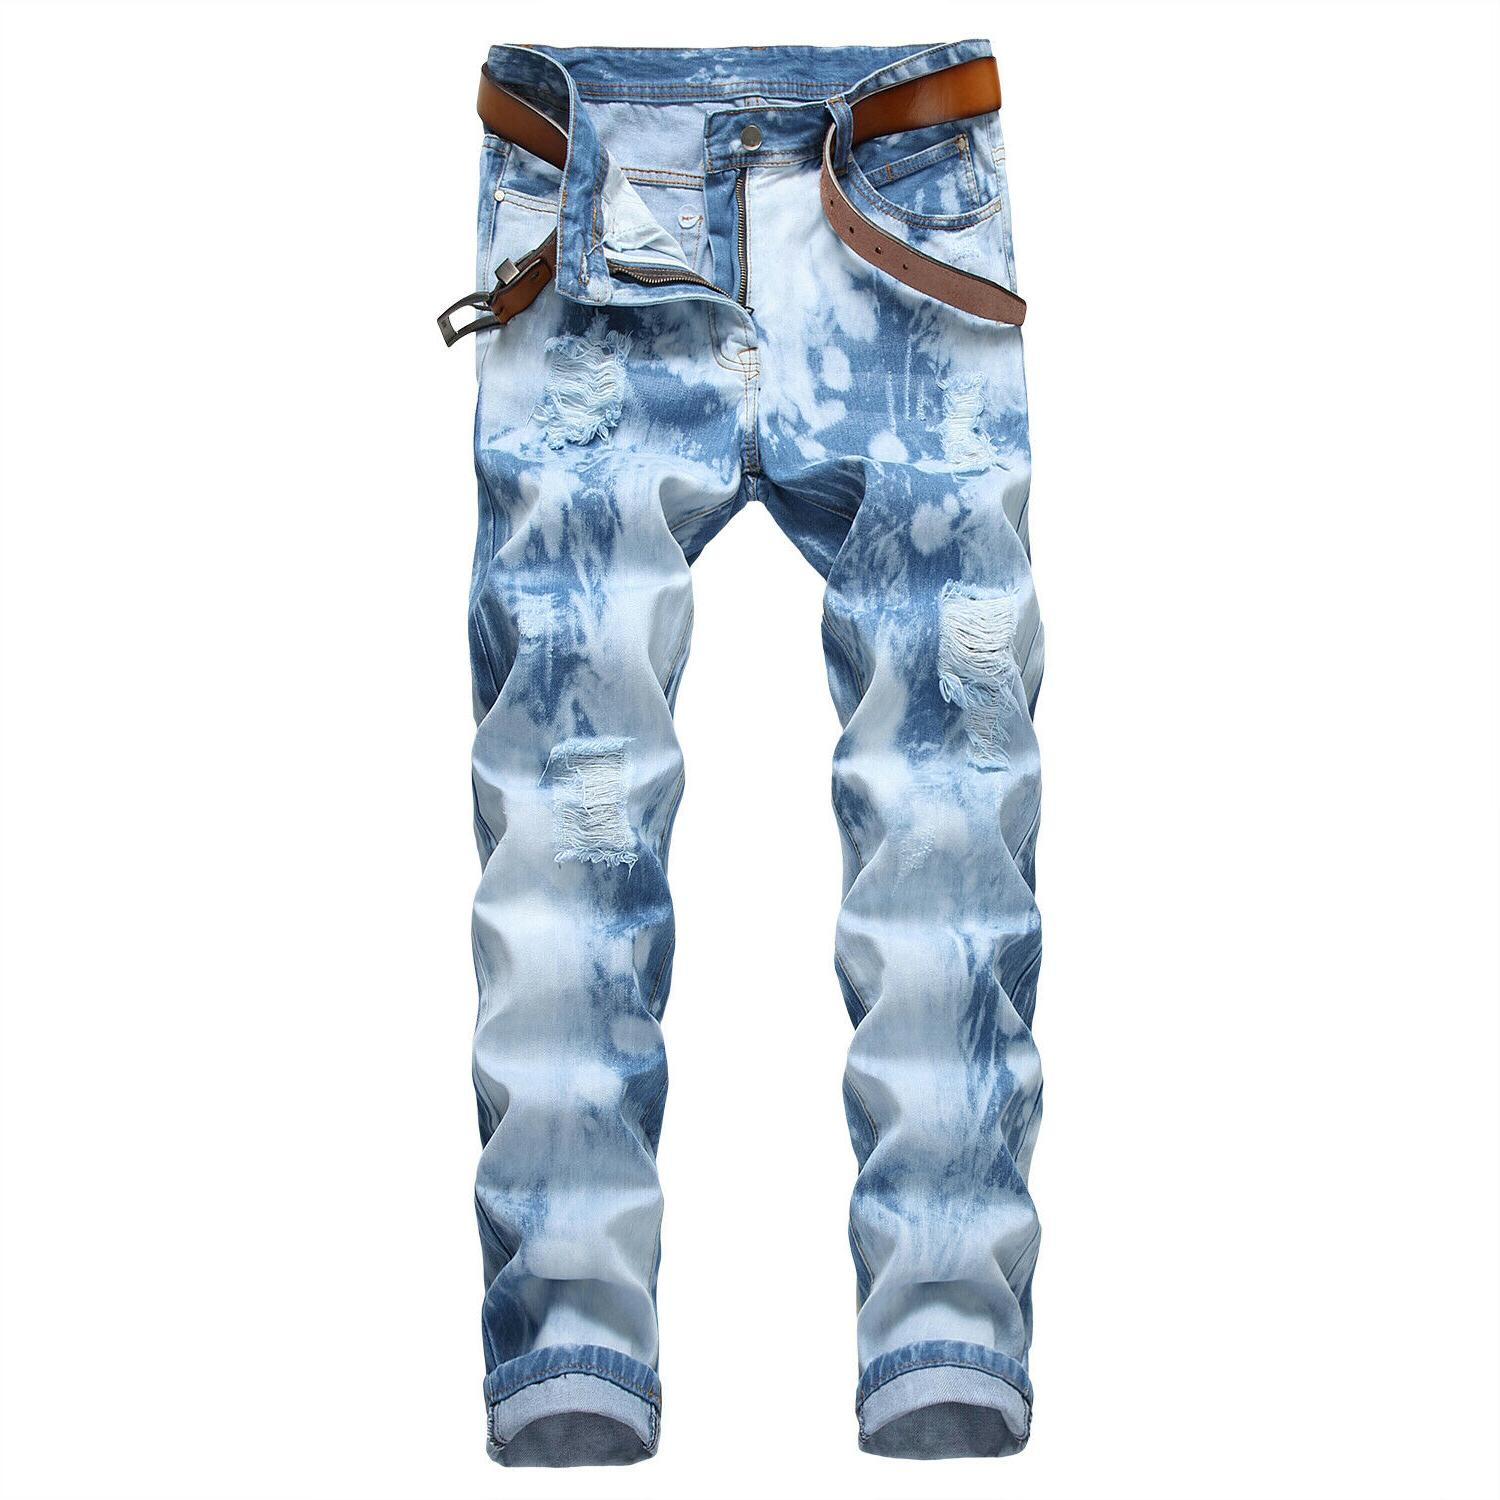 Men's Ripped Skinny Distressed Slim Jeans